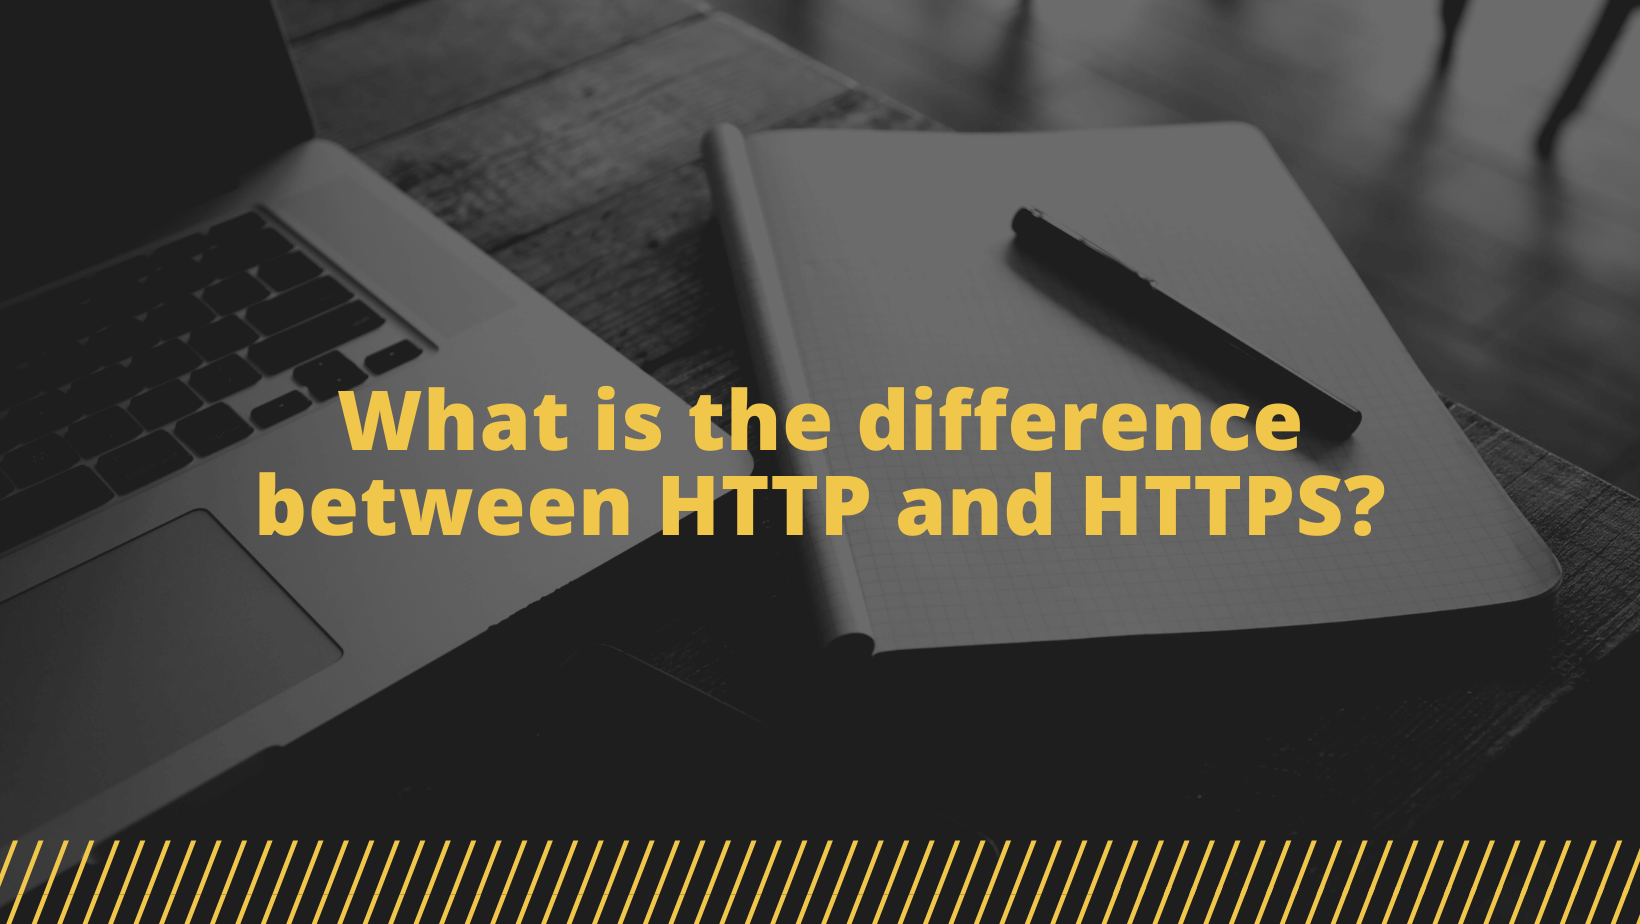 What is the difference between HTTP and HTTPS